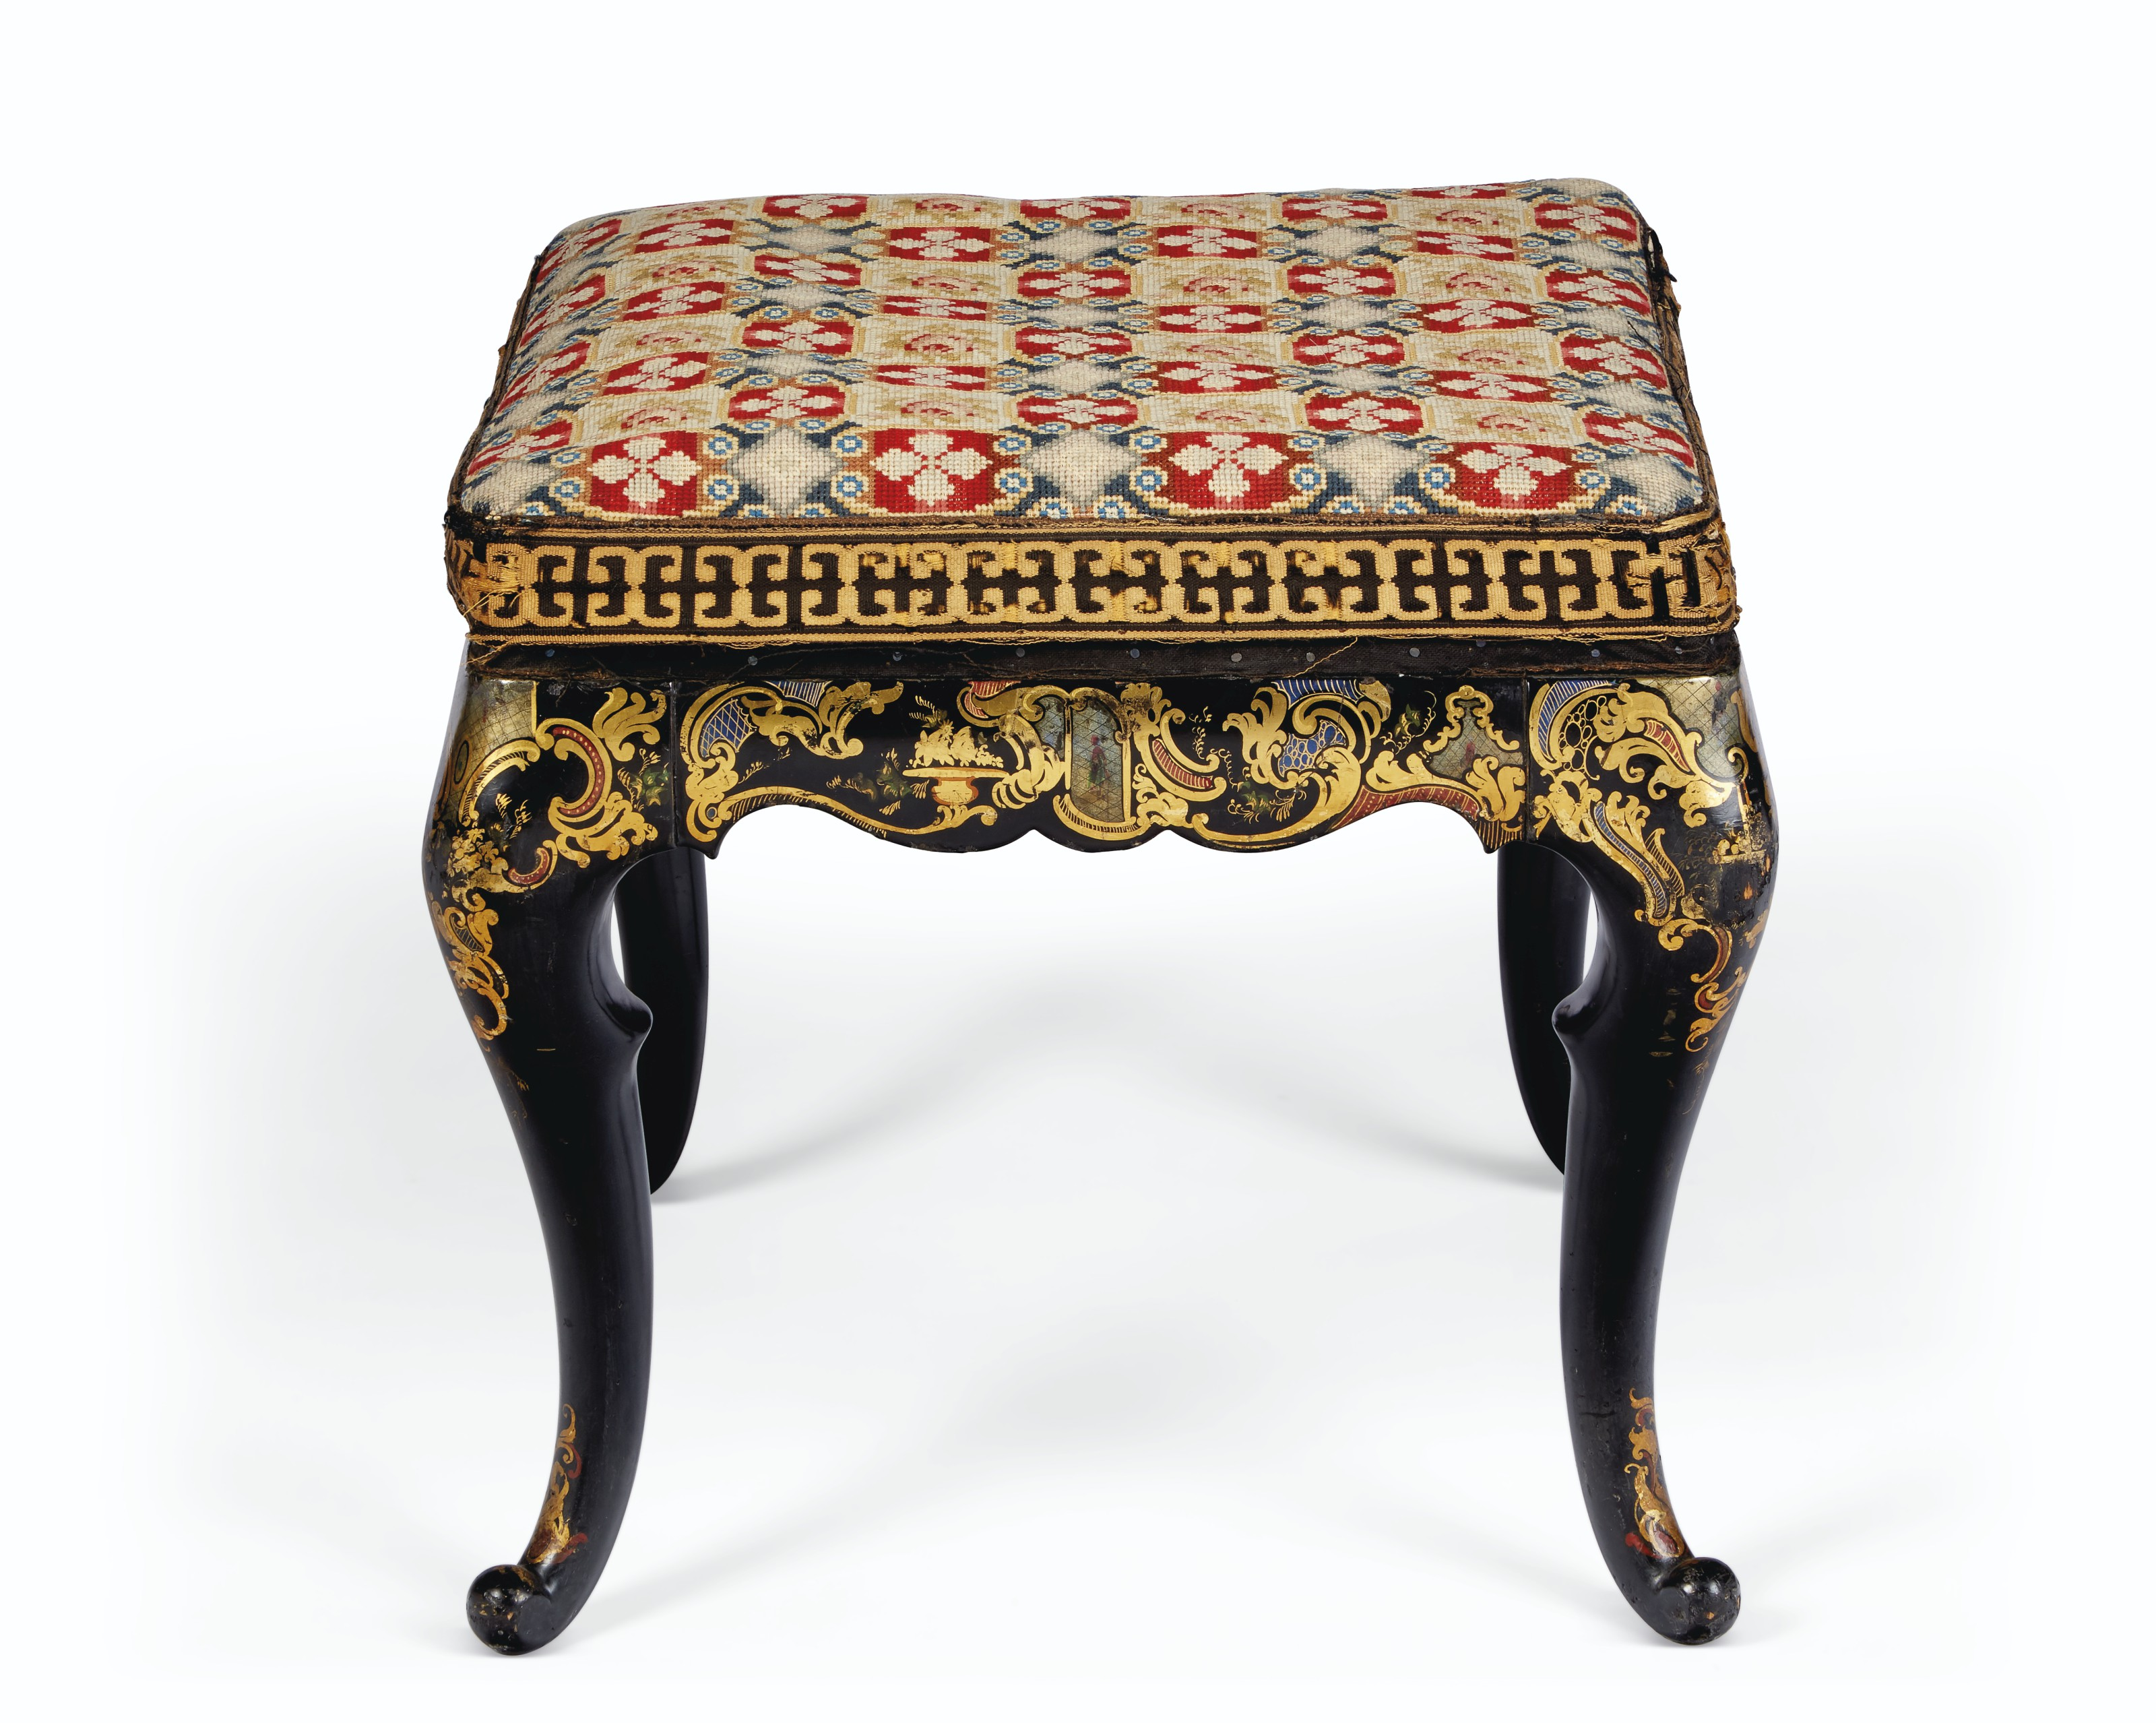 A NAPOLEON III BLACK, GILT AND POLYCHROME-DECORATED STOOL